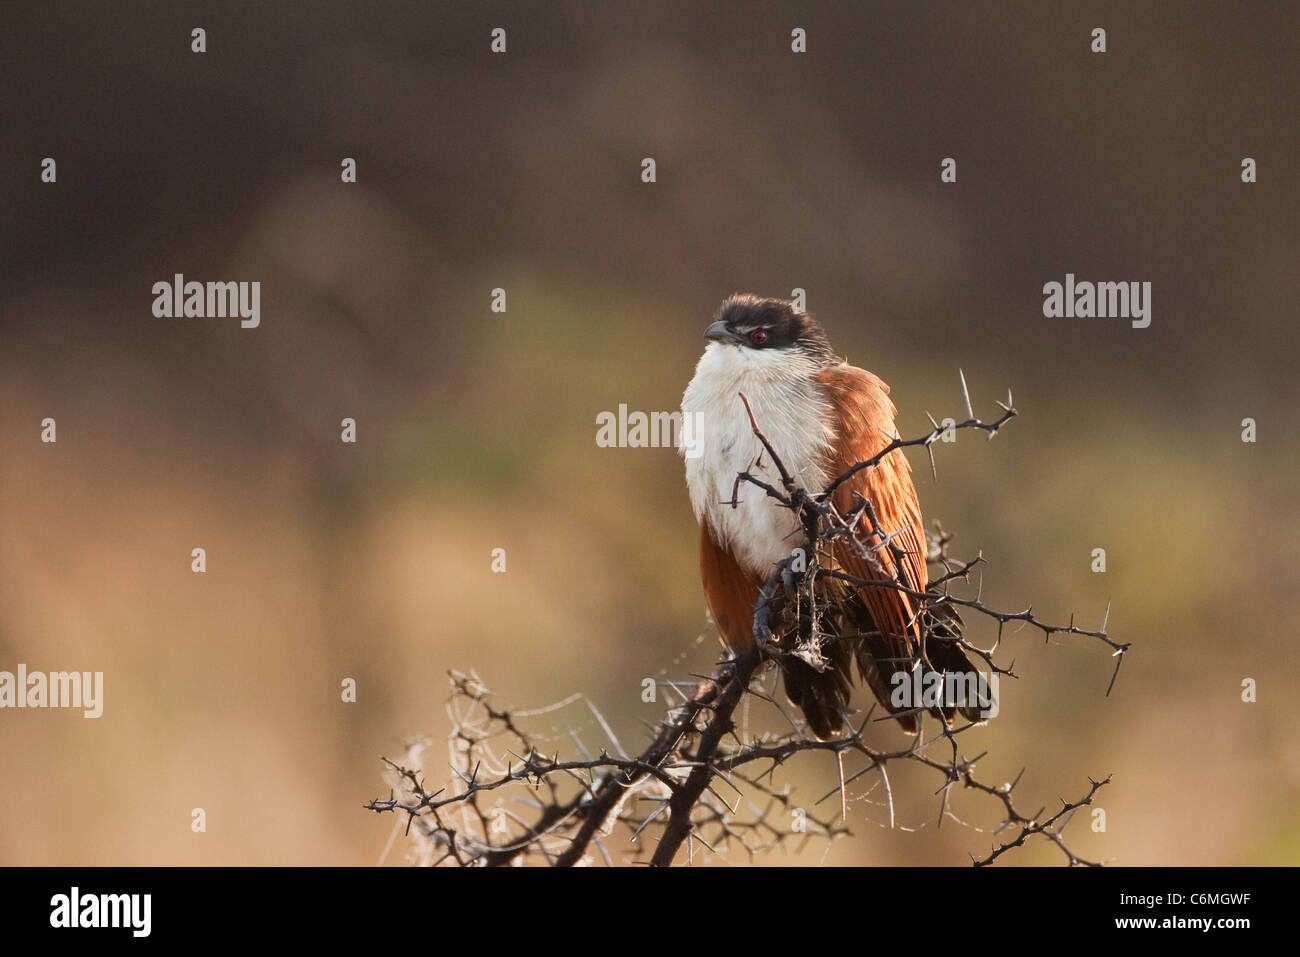 Burchell's coucal (rain bird) on a branch with dew in early morning light - Stock Image